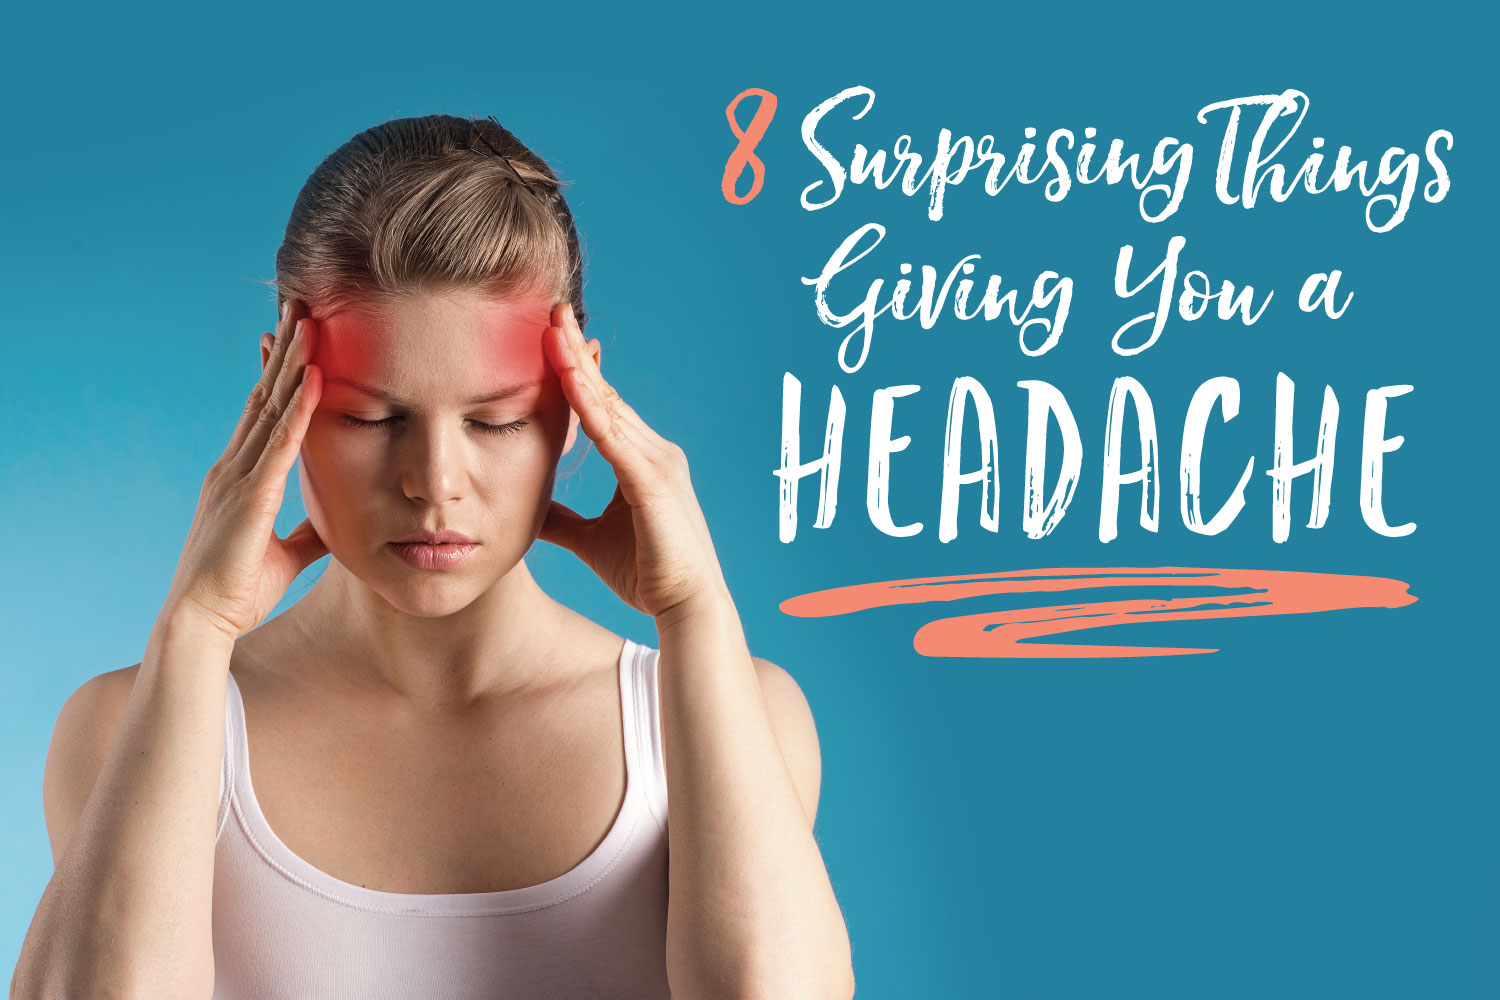 A common cold with a severe headache livestrong 8 surprising things giving you a headache ccuart Gallery